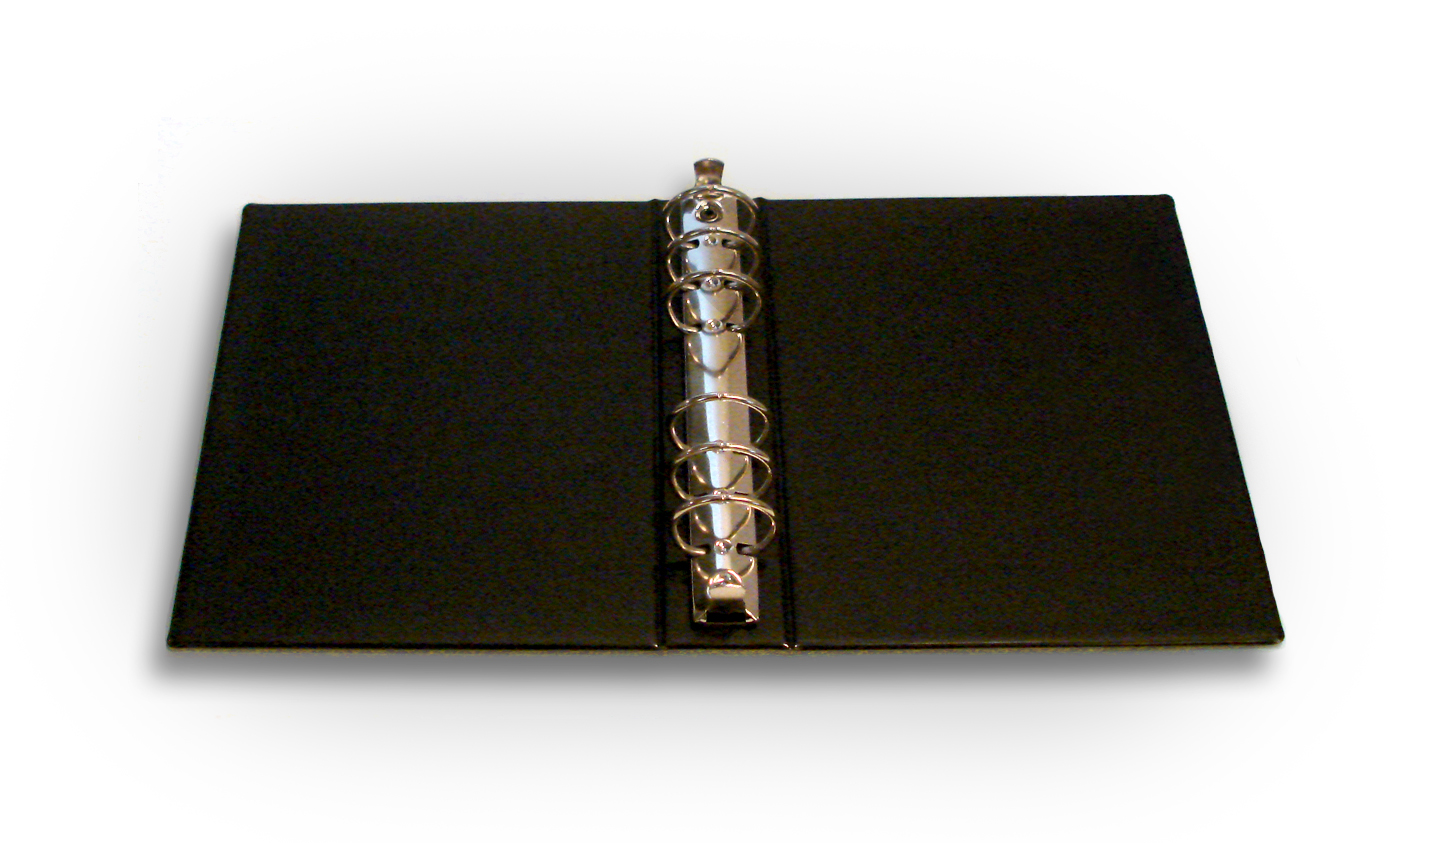 Small  Ring Binder Black   Inch Rings